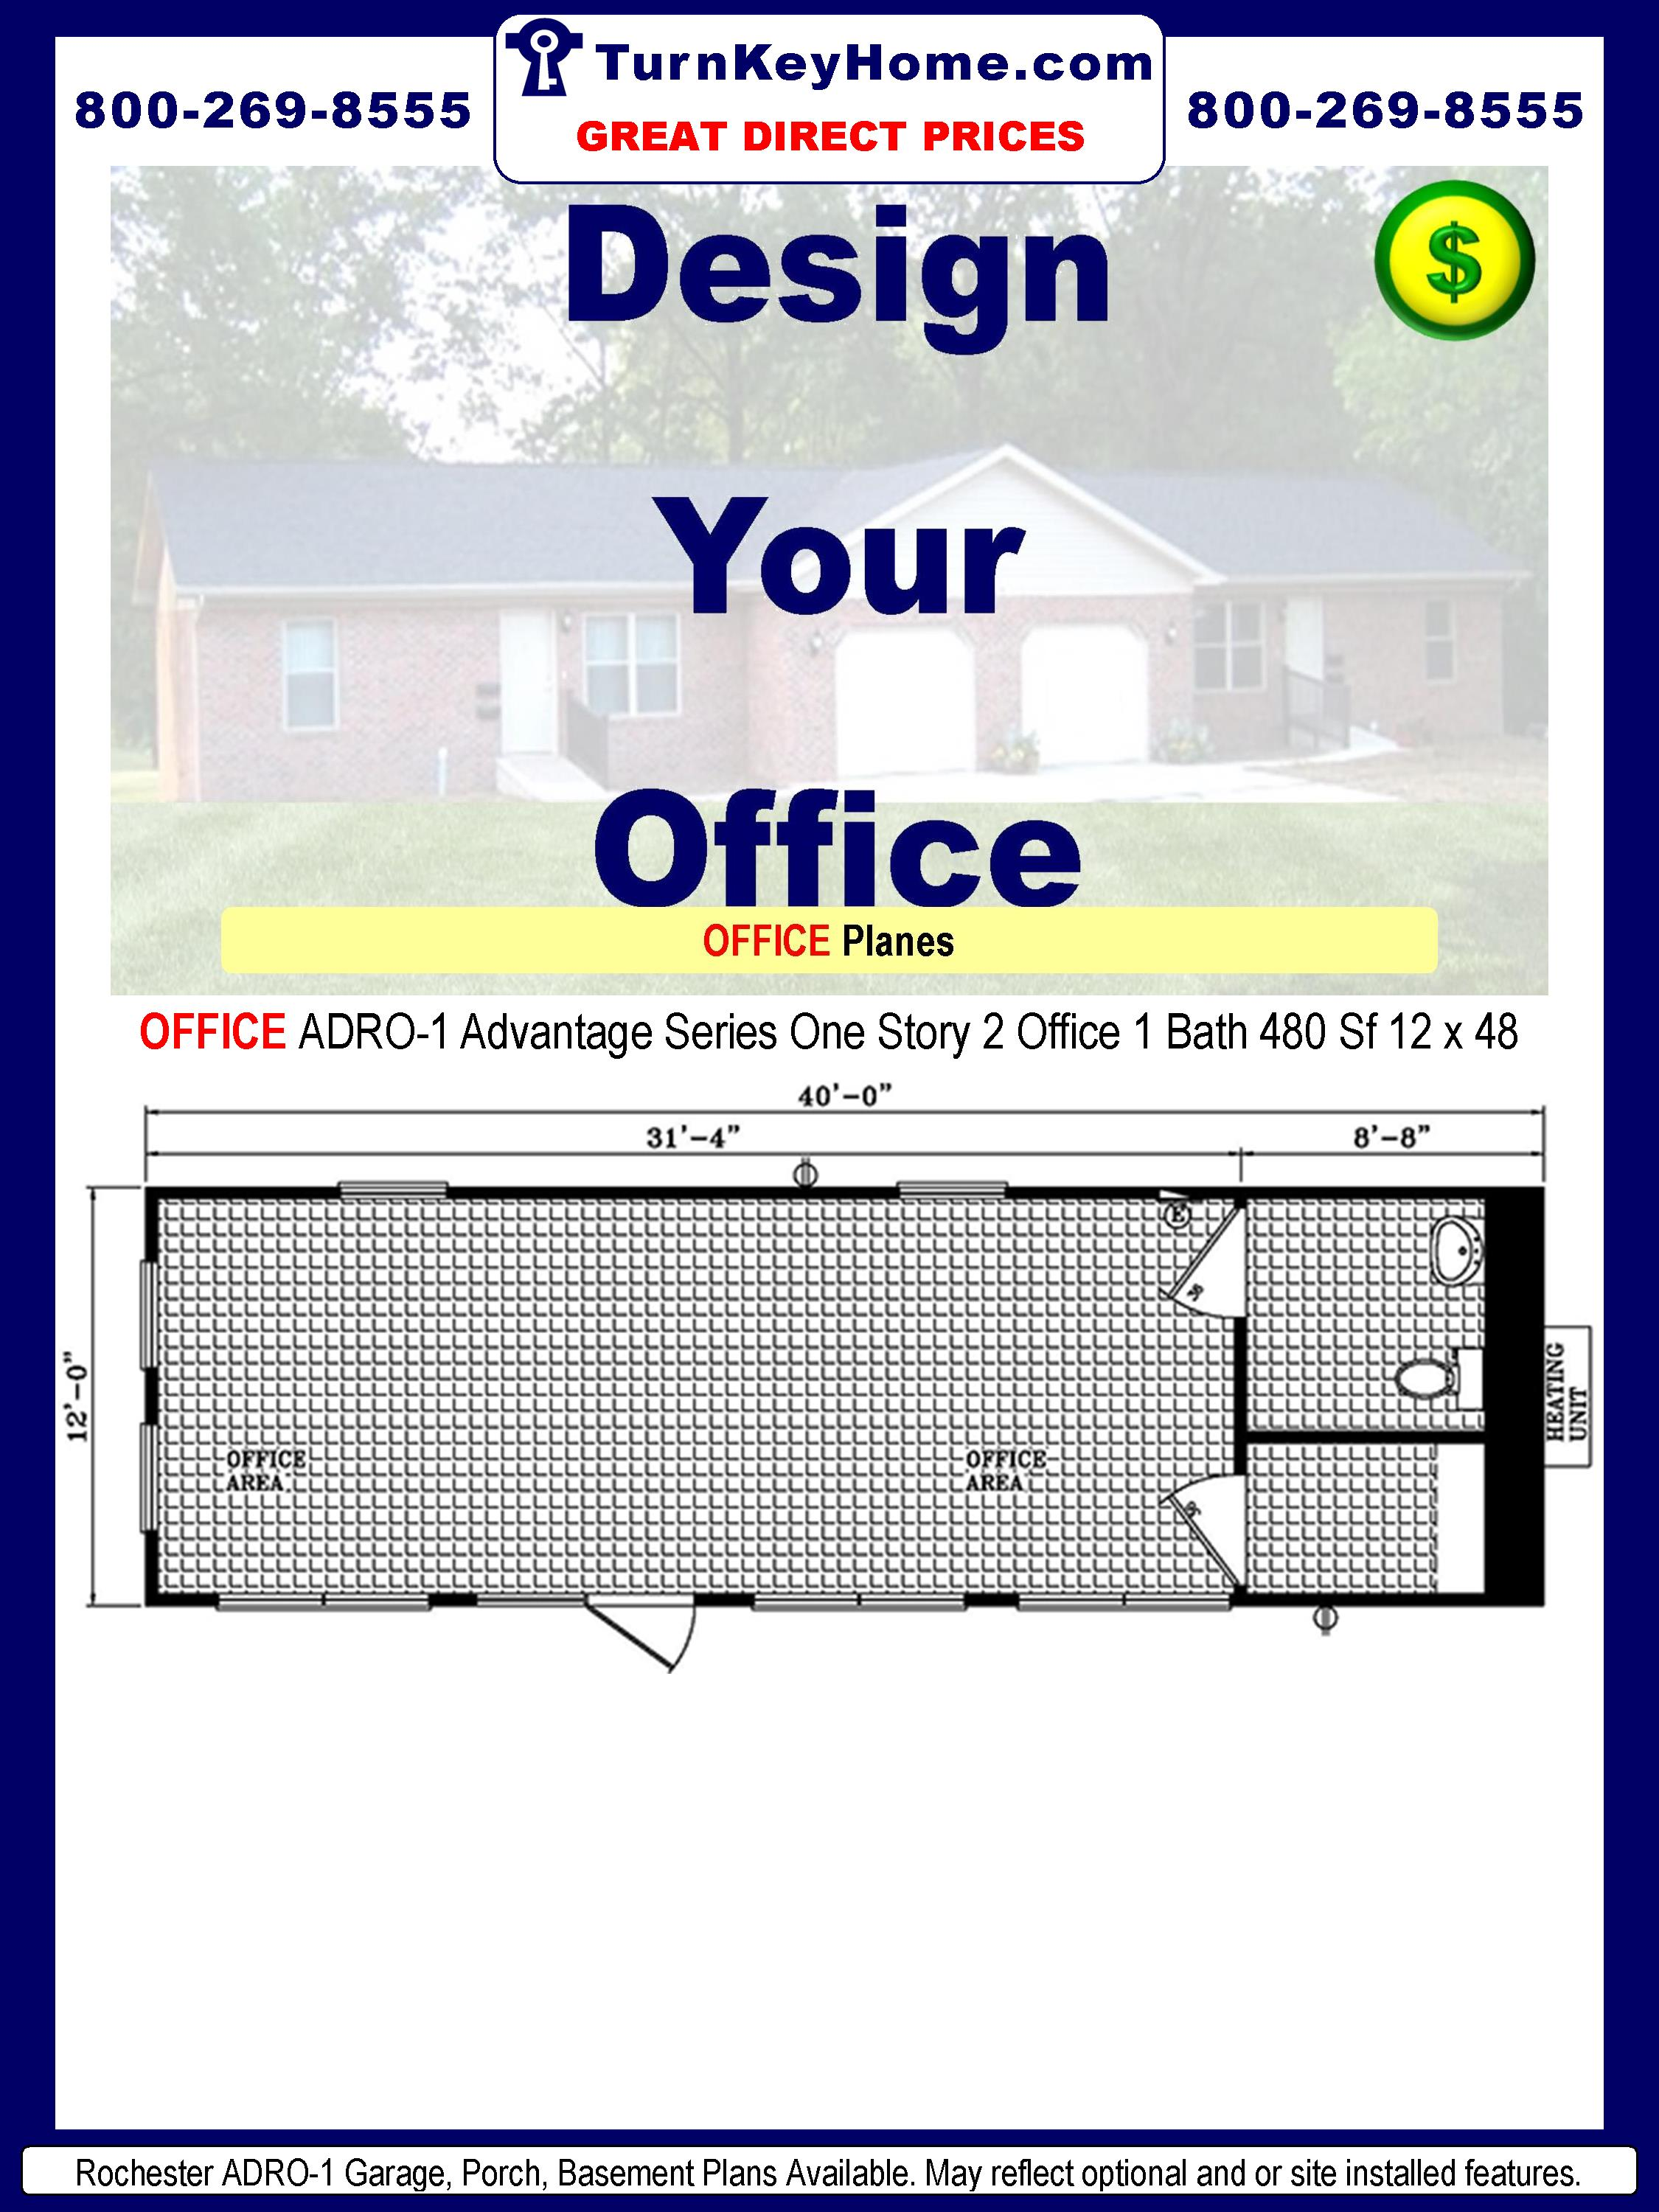 Rochester Homes OFFICE ADRO-1 Advantage Series Modular One Story Office 2 Offices 1 Bath 480 Sf Each 12 x 40.Price